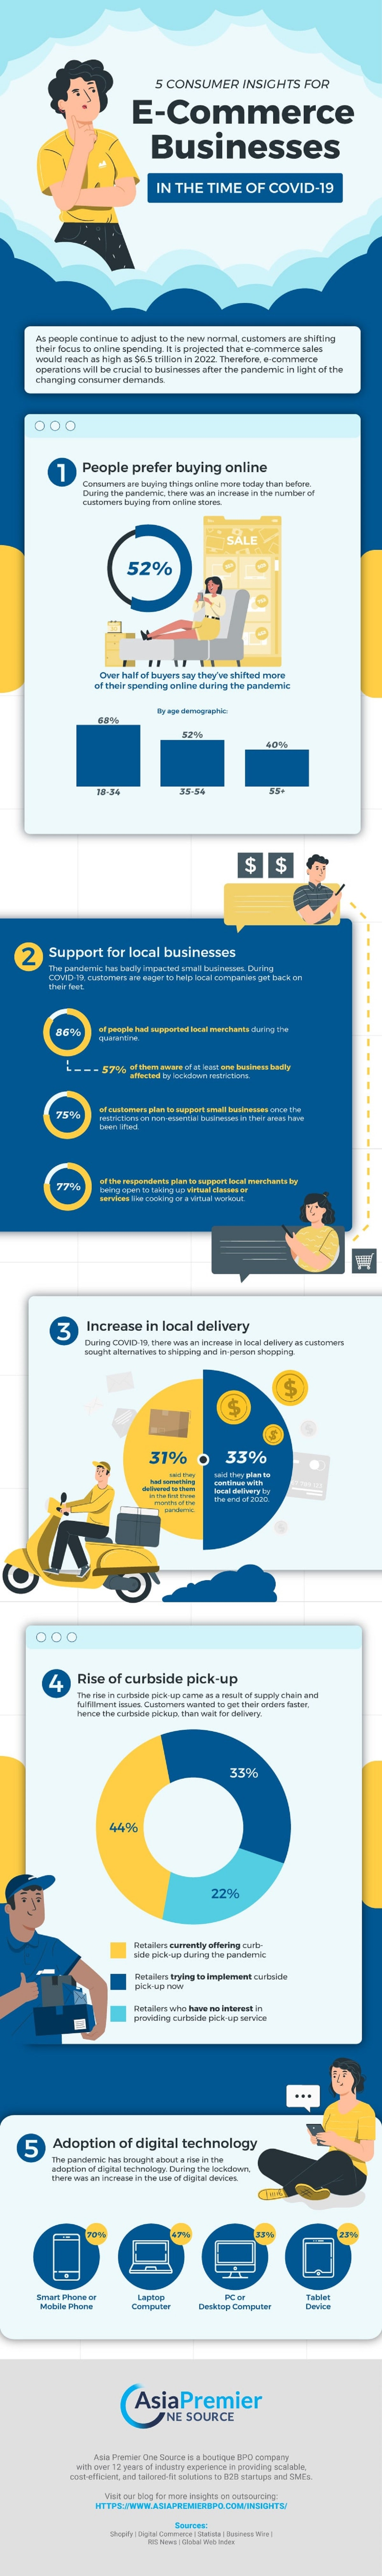 5-consumer-insights-for-e-commerce-businesses-in-the-time-of-covid-19-infographic